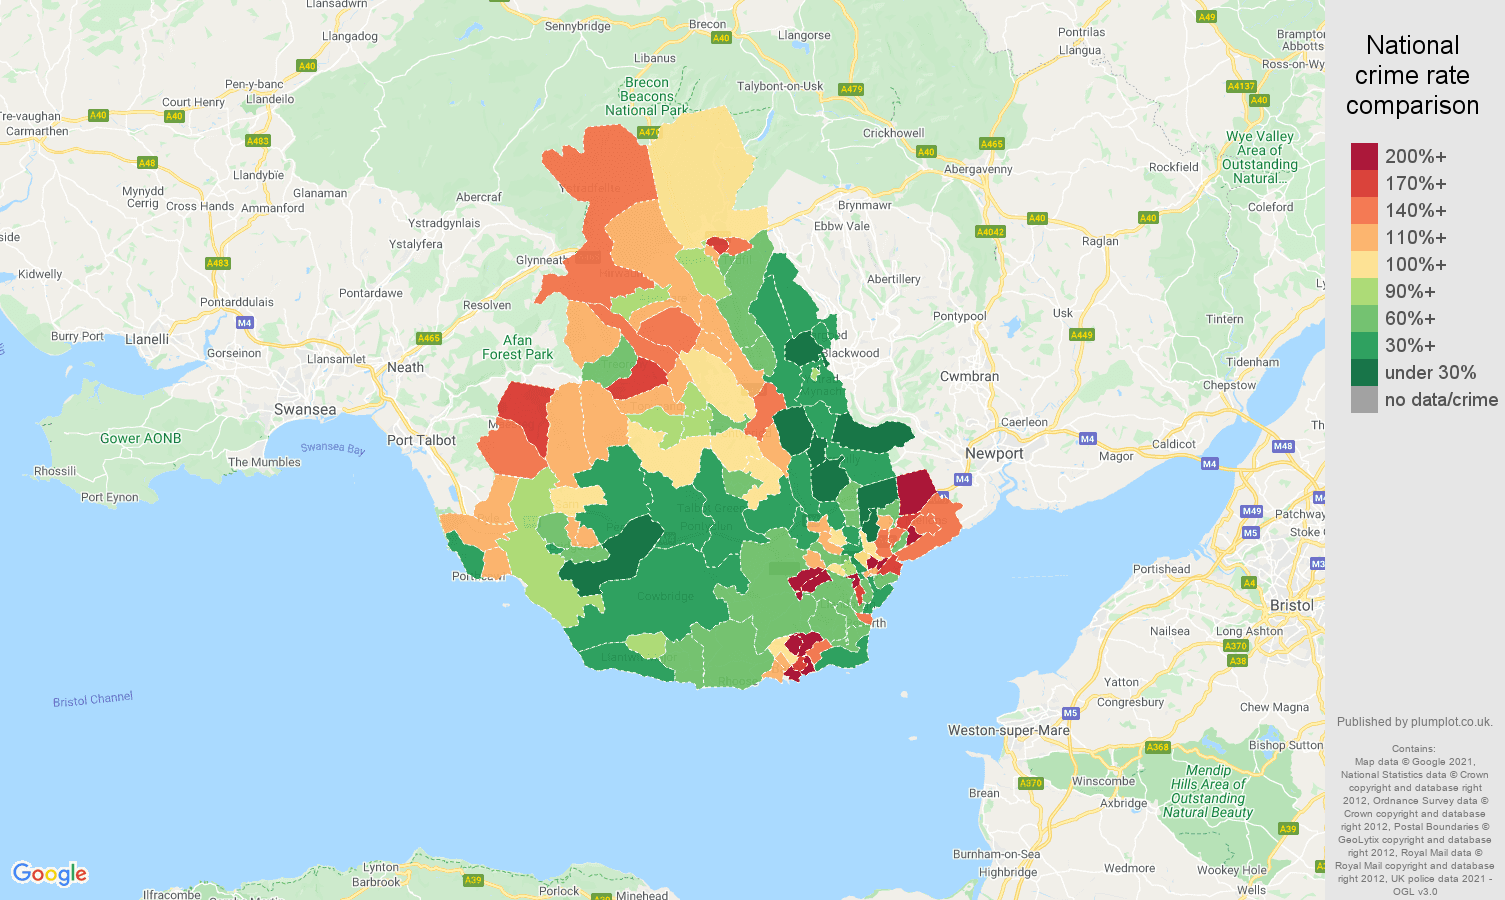 Cardiff criminal damage and arson crime rate comparison map